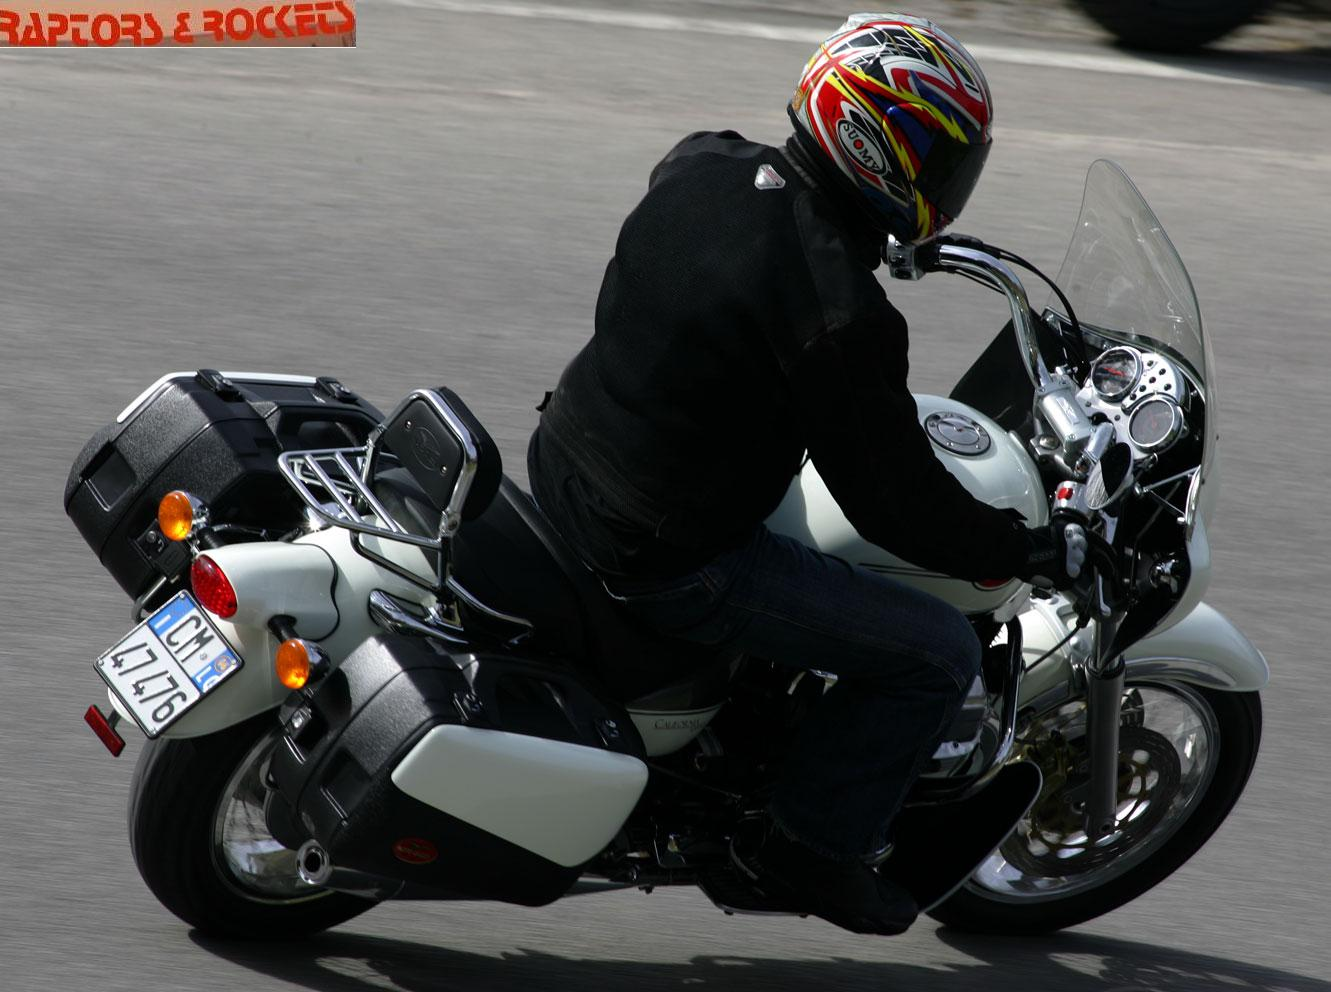 Moto Guzzi California EV Touring 2004 images #146650